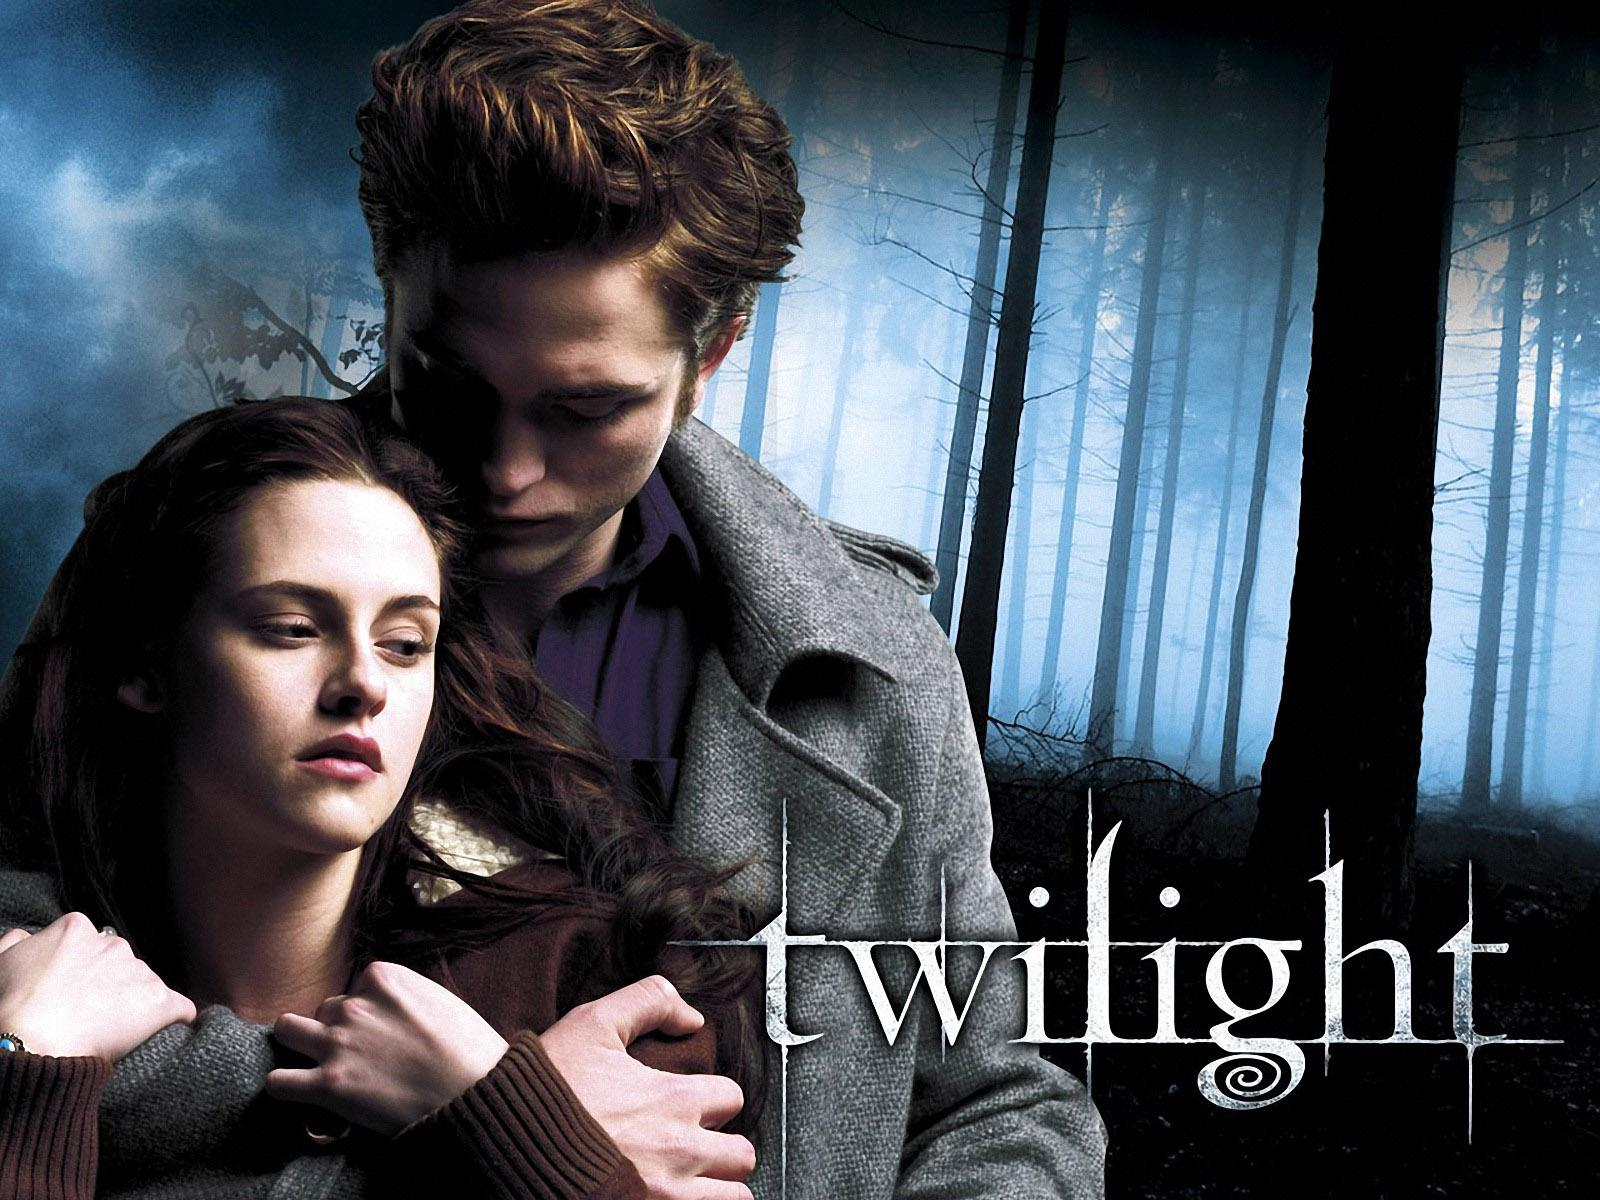 twilight movie free download for mobile